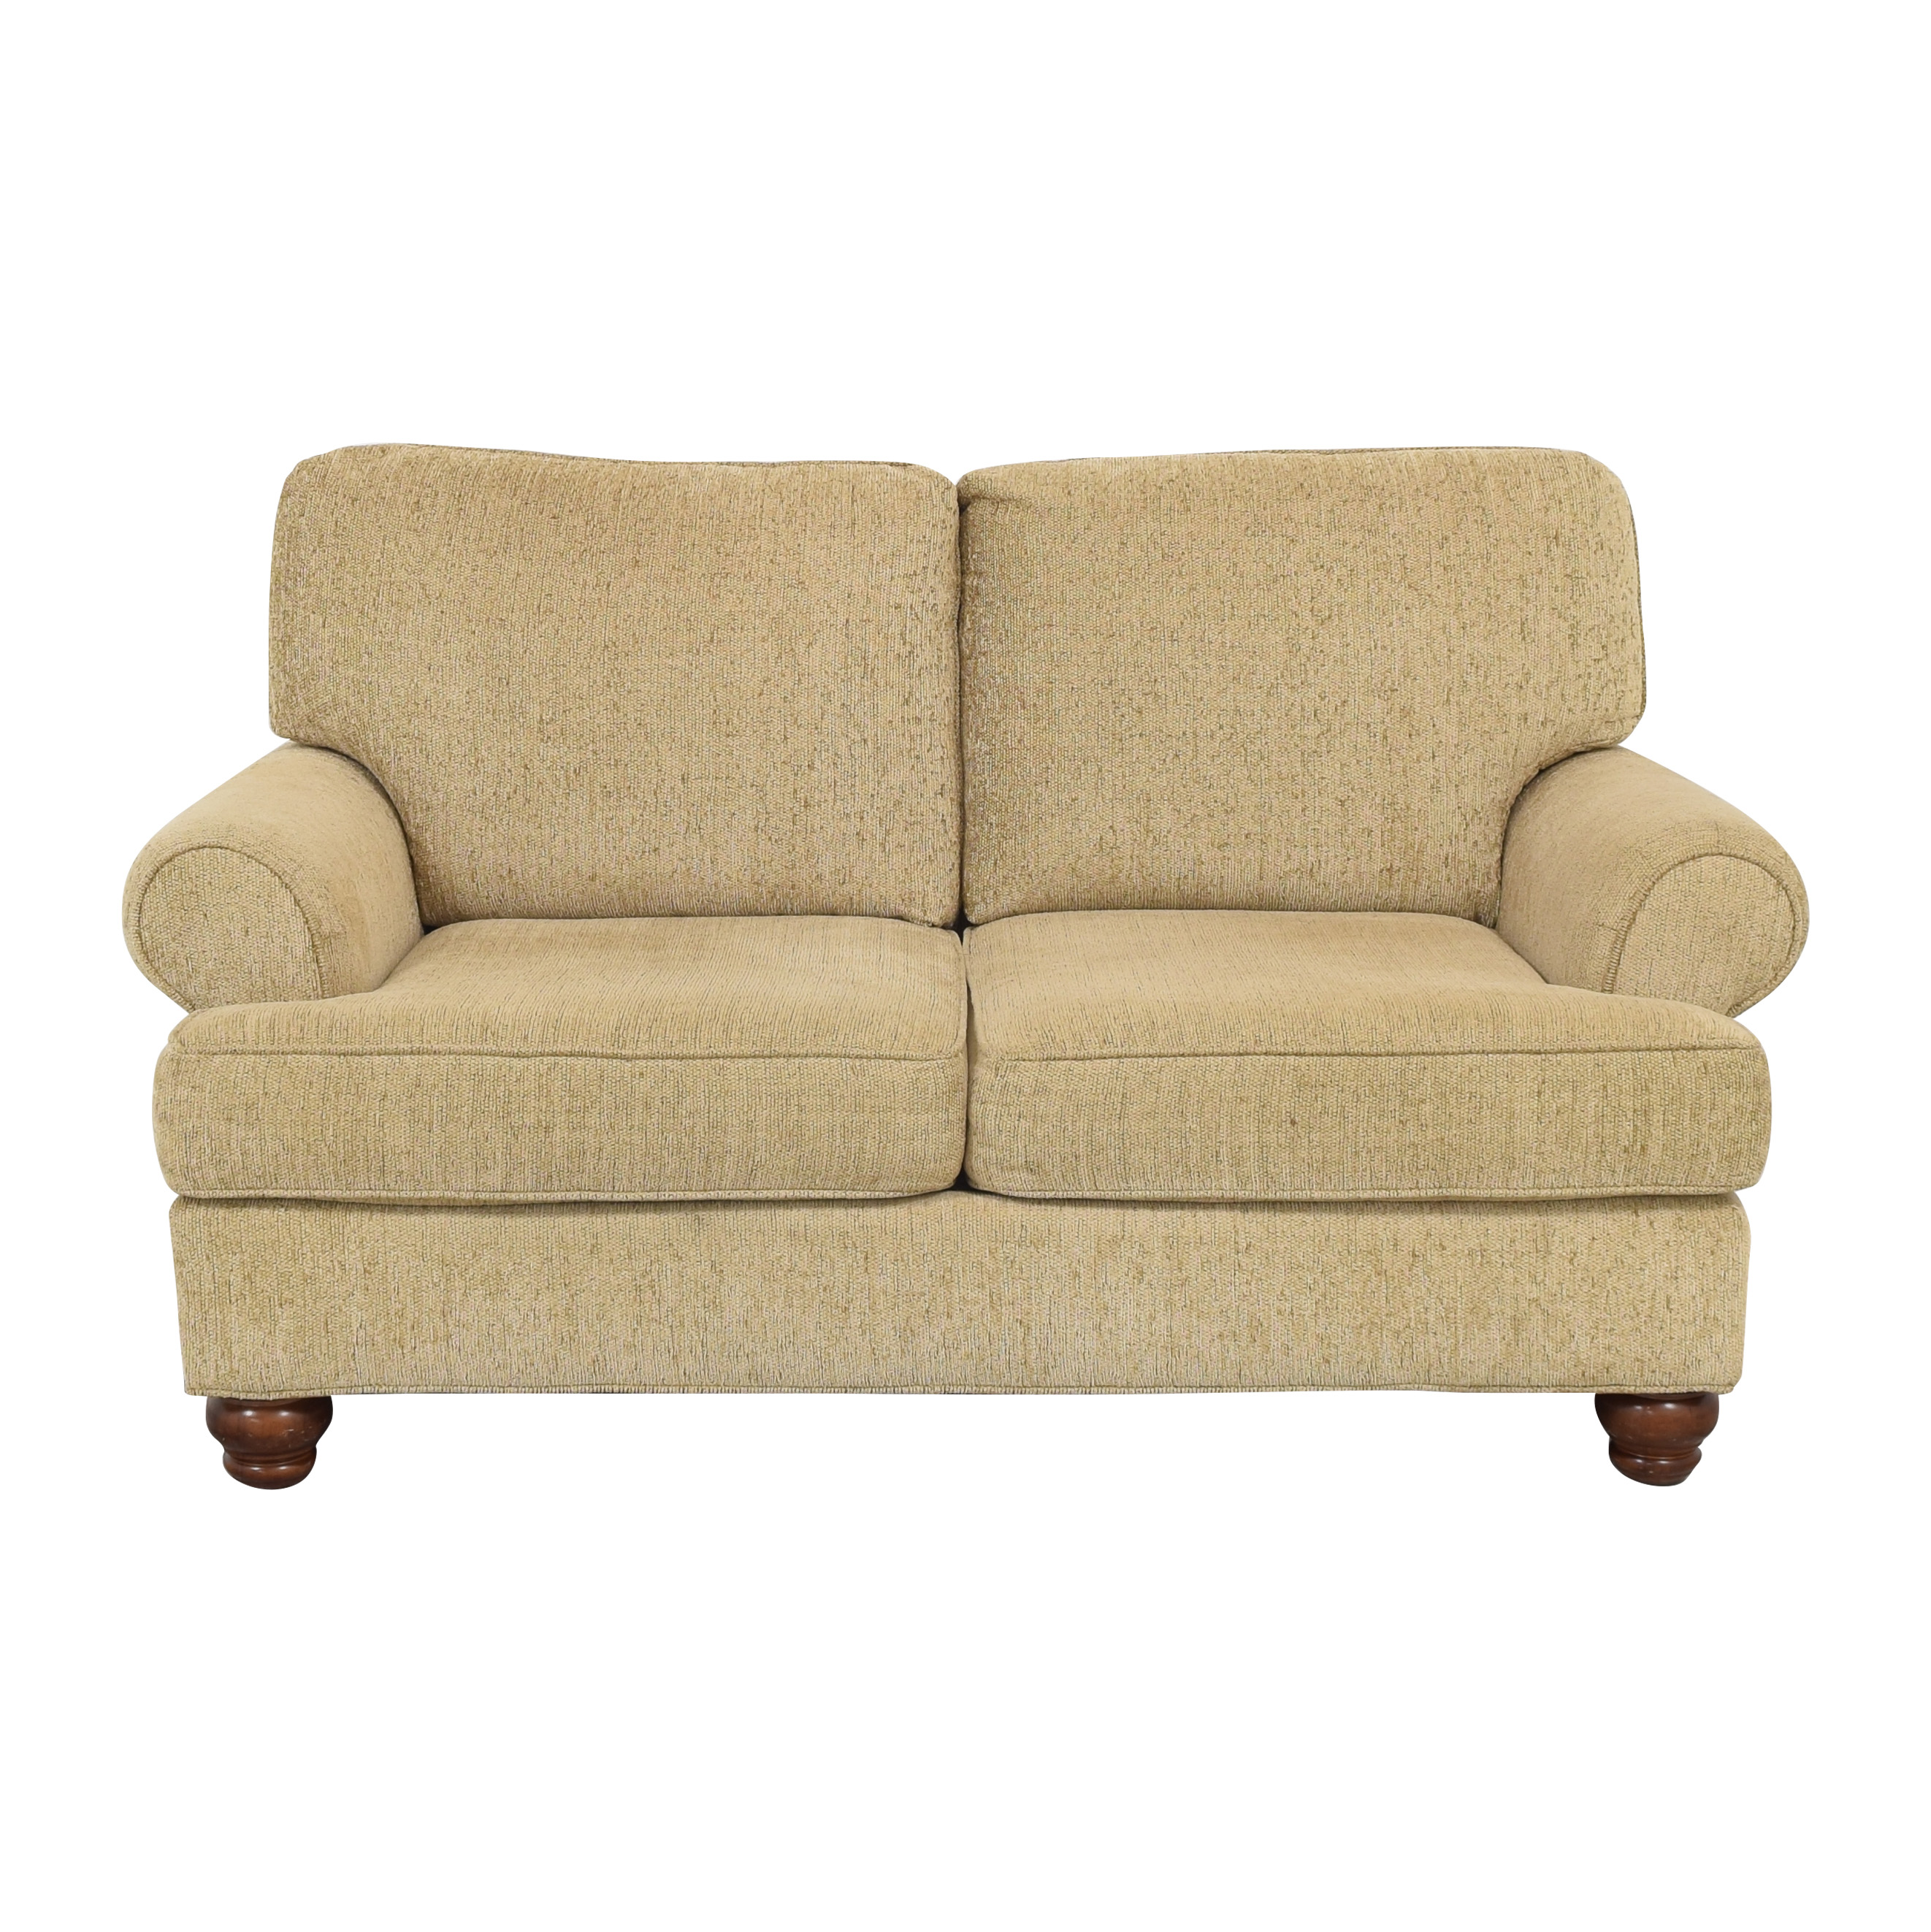 buy Emerald Craft Loveseat Emerald Home Furnishings